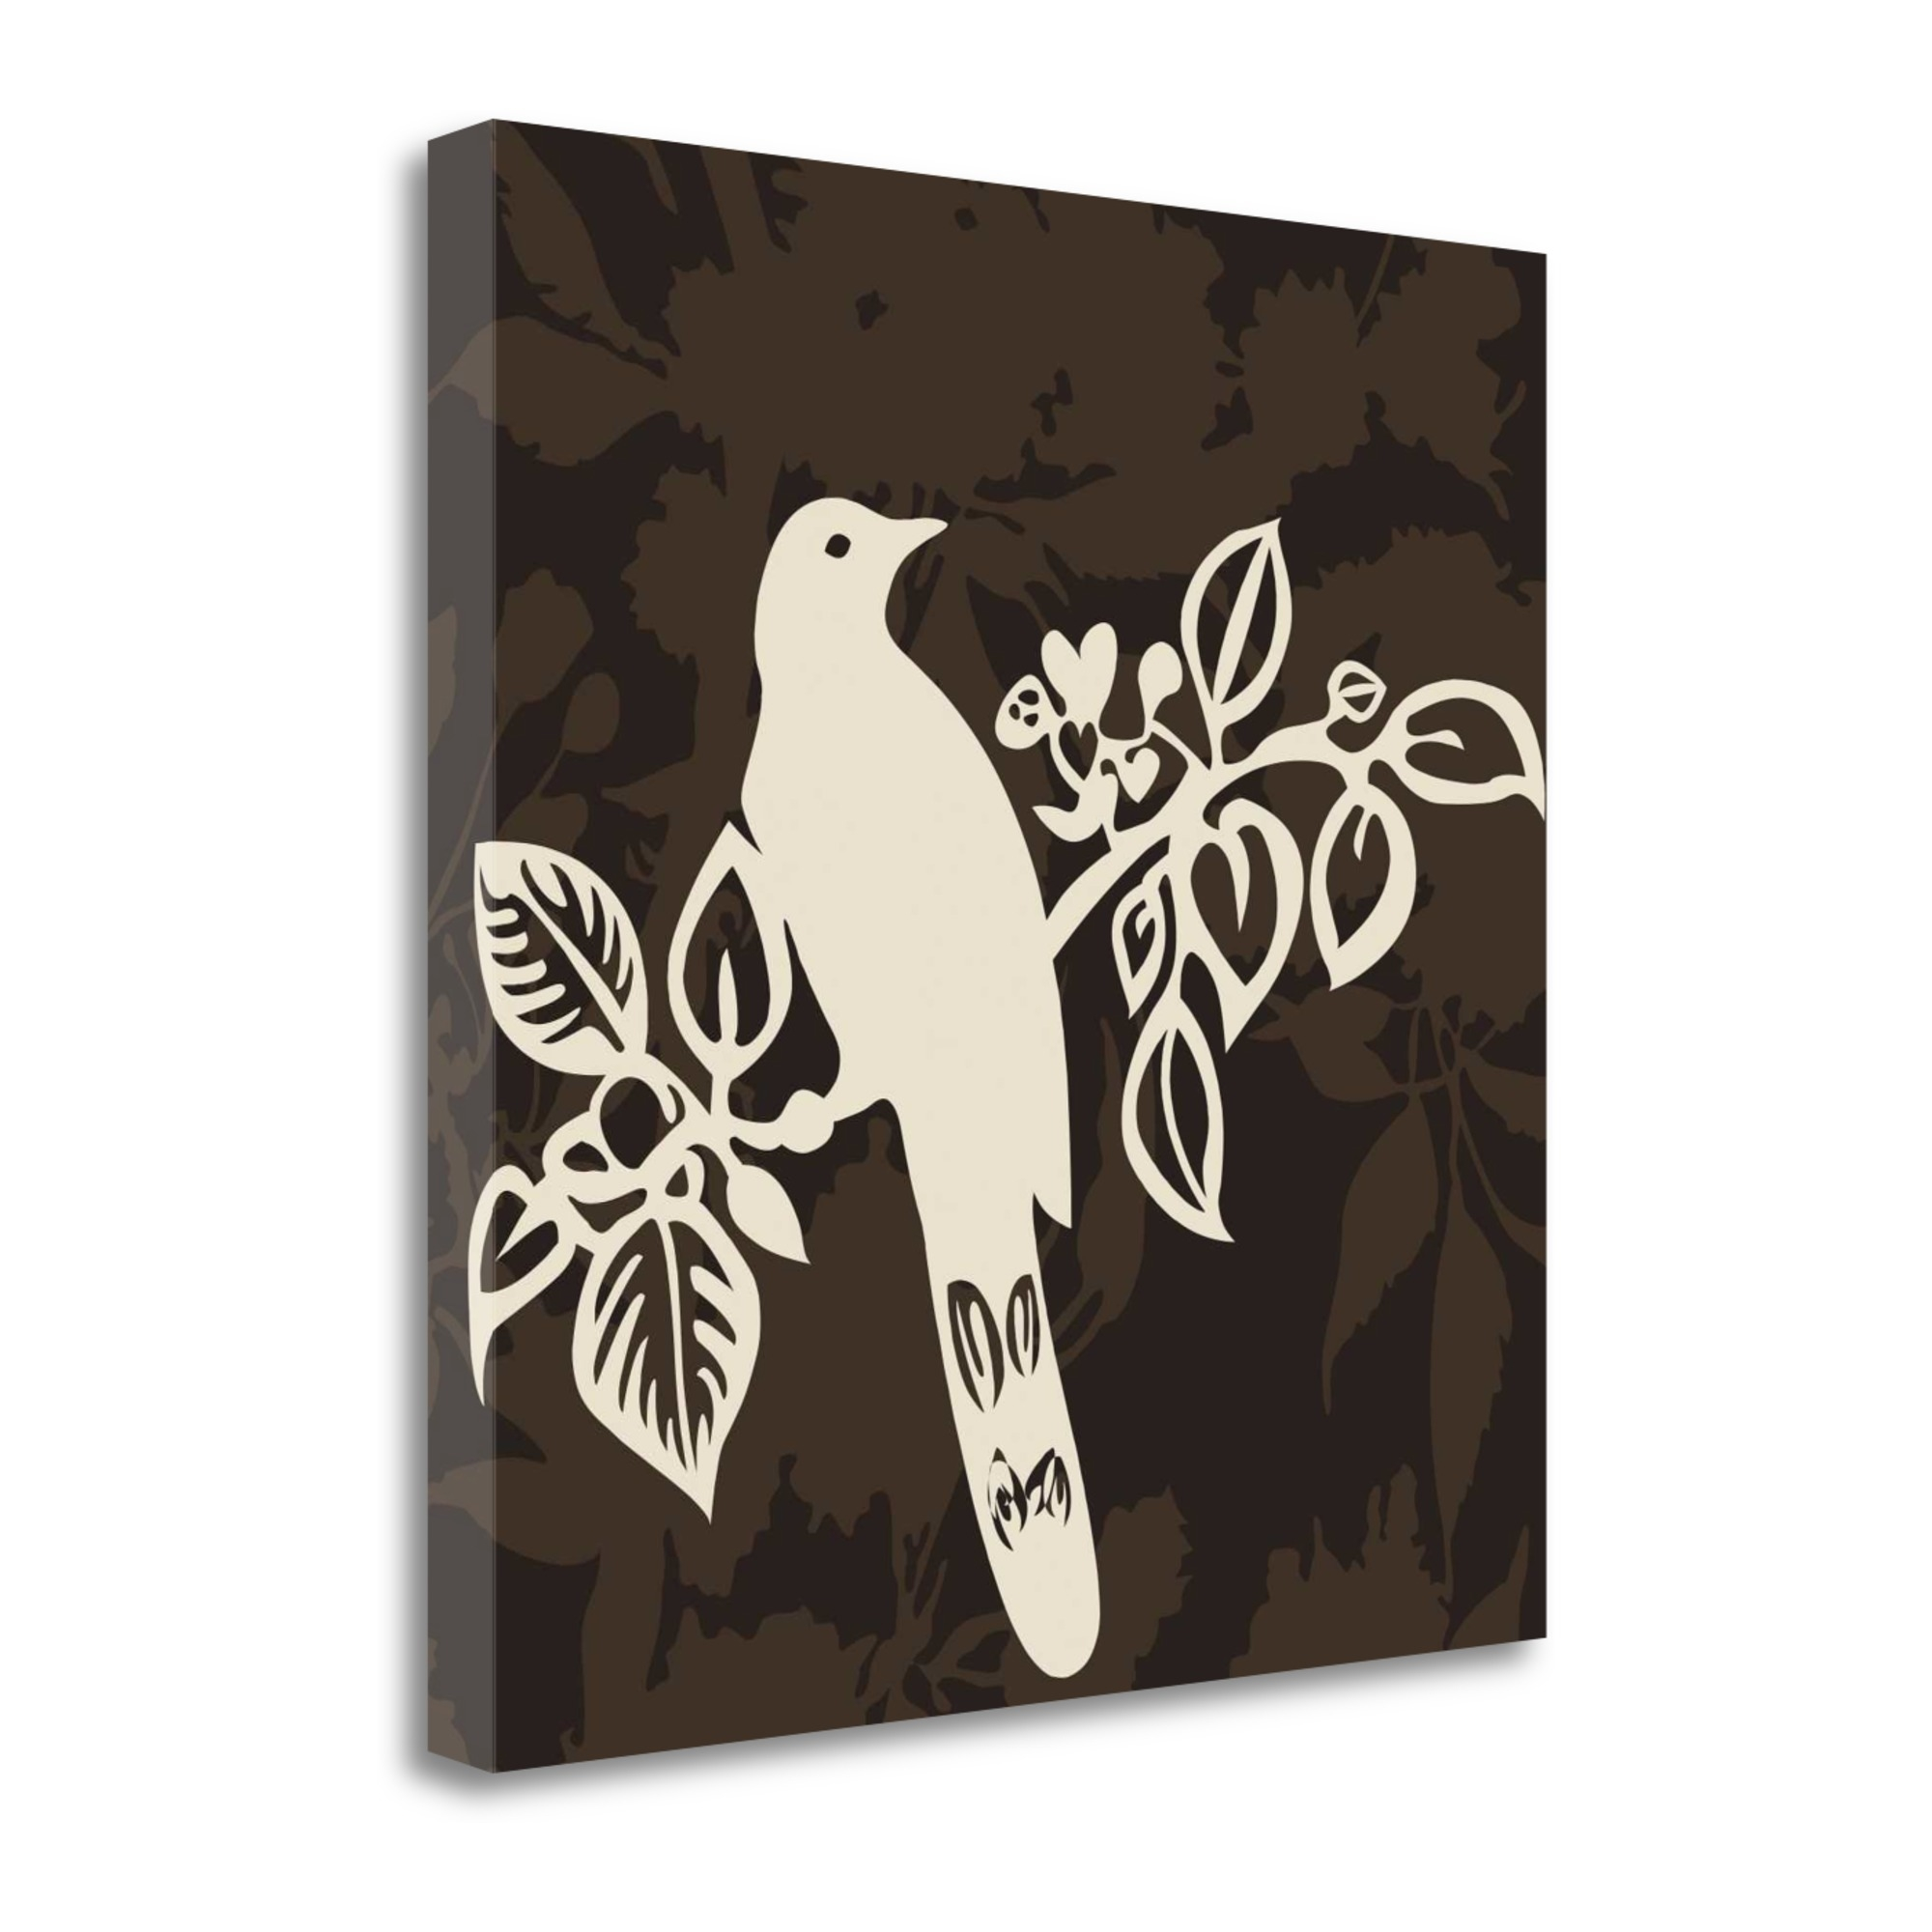 "Song Bird 2 By Jette Svane, 23"" x 23\"" Fine Art Giclee Print on Gallery Wrap Canvas, Ready to Hang"